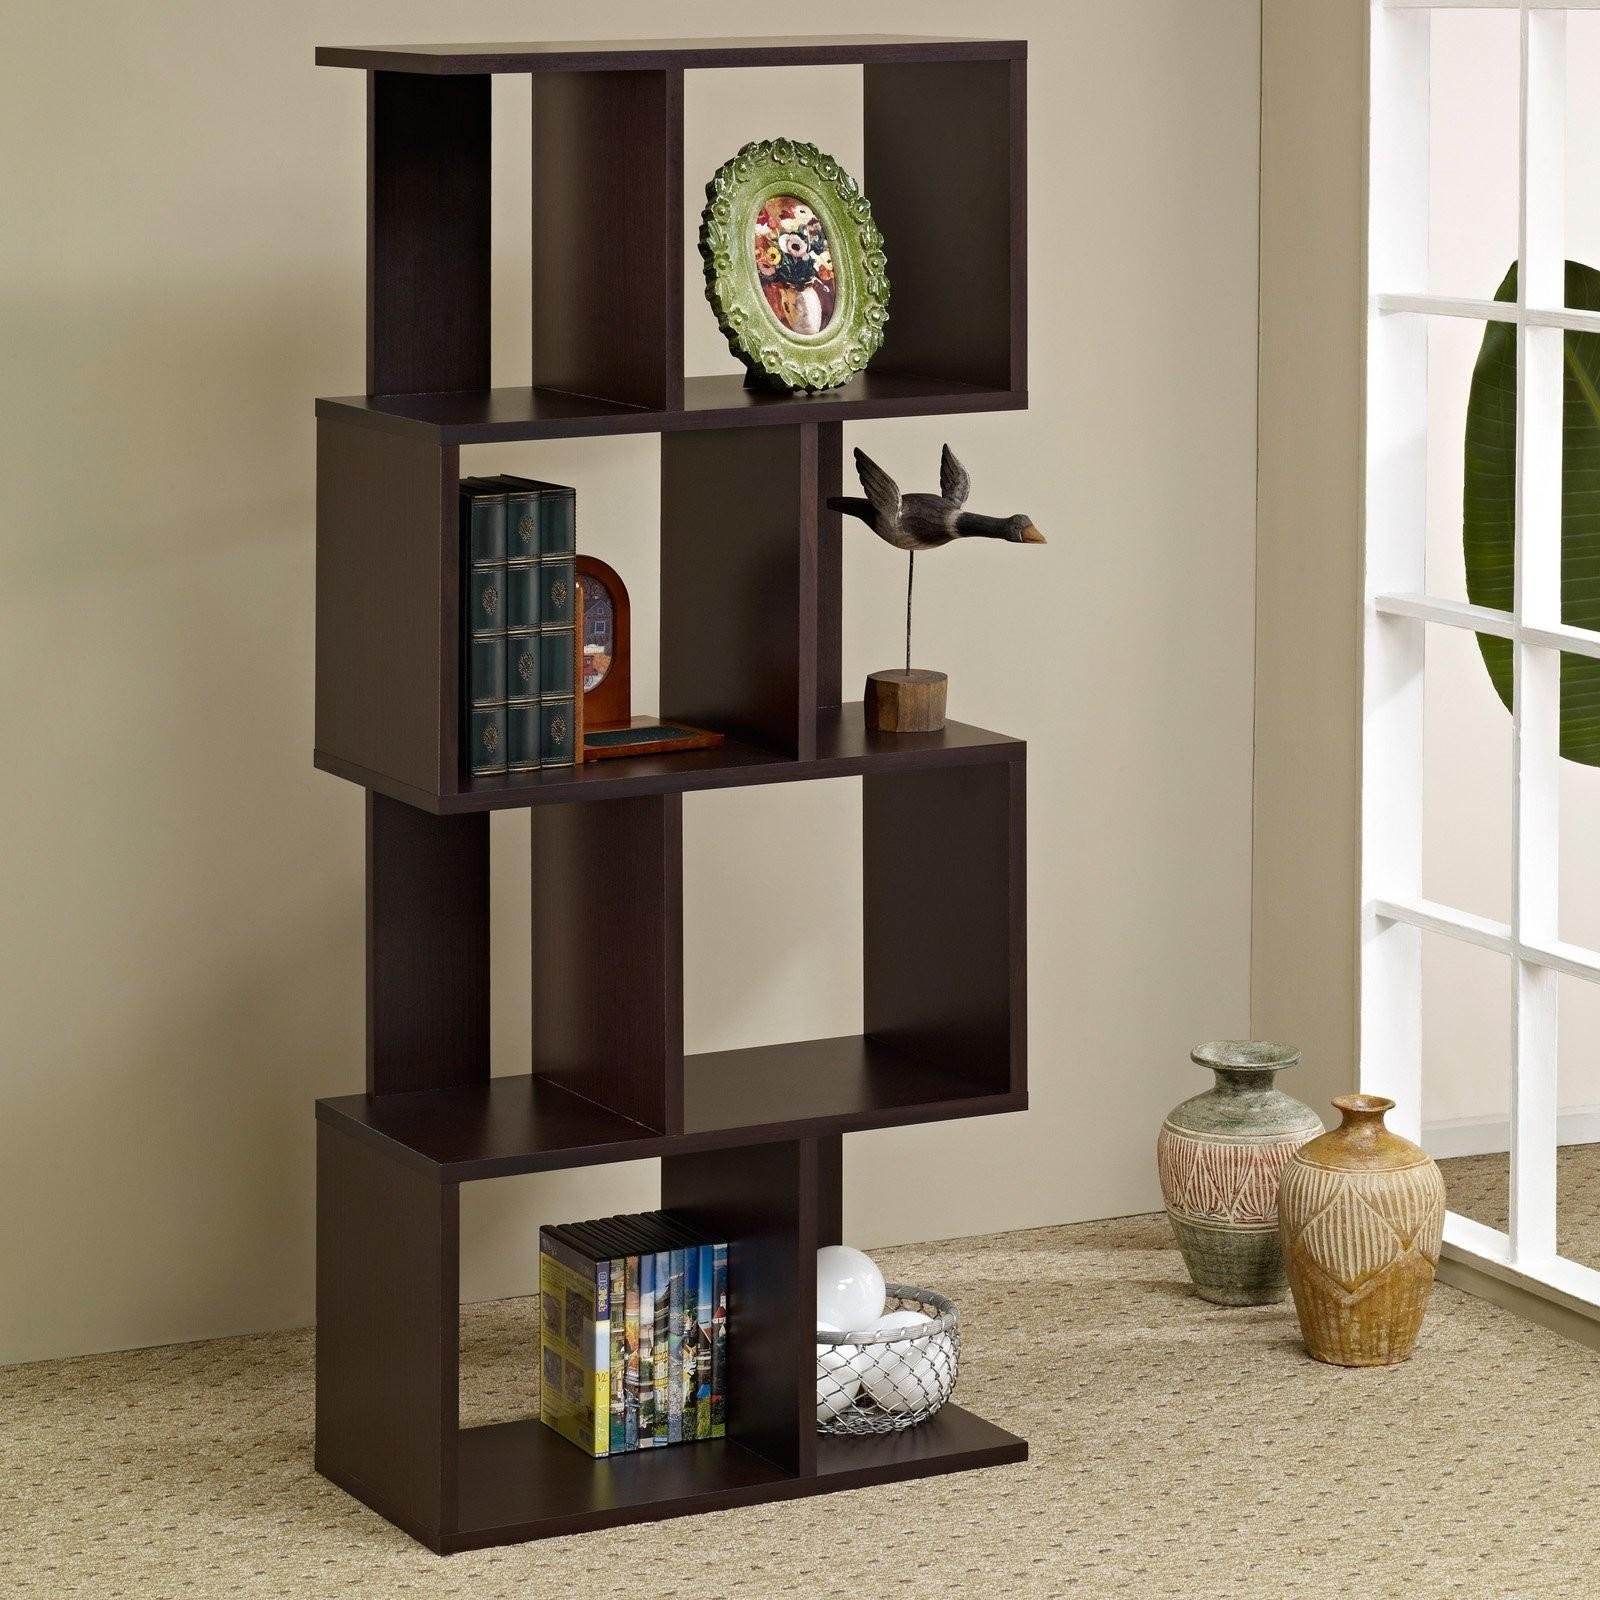 Ecleste Bookcase Room Divider Bookcases Hayneedle